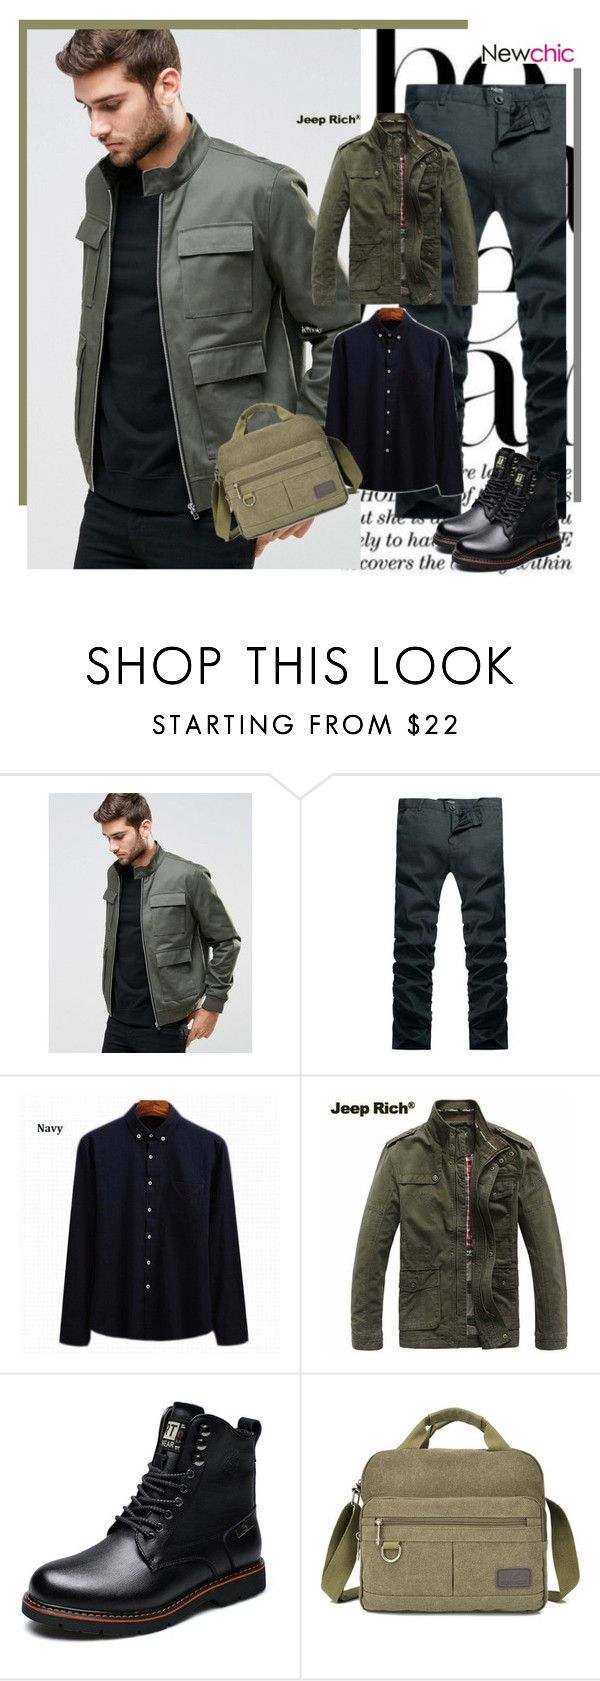 """""""Newchic.com 26"""" by bebushkaj ❤ liked on Polyvore featuring ASOS, Jeep Rich, men's fashion and menswear"""